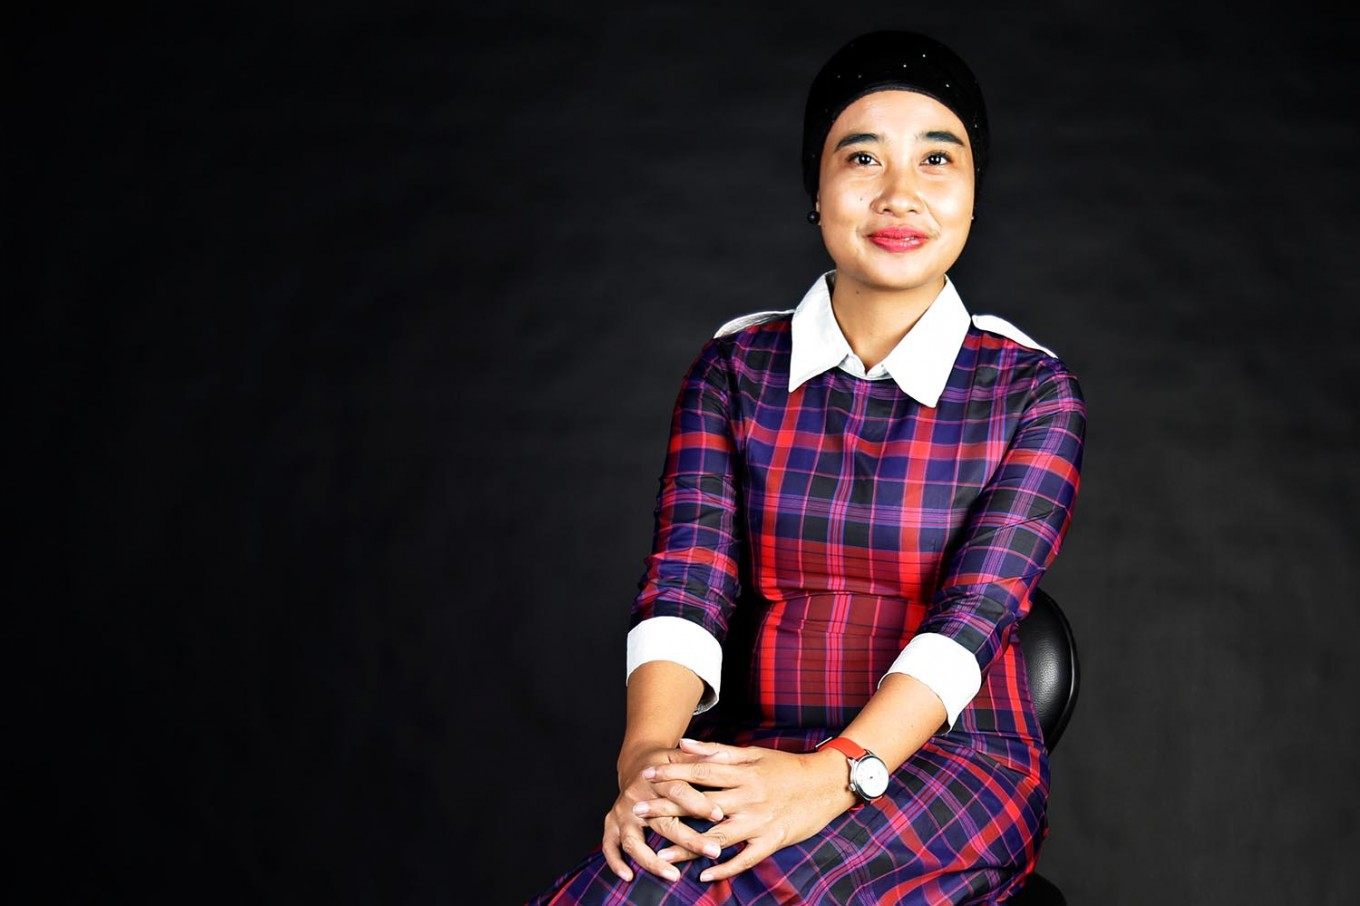 Author Okky Madasari ventures into new genre, launches children's series